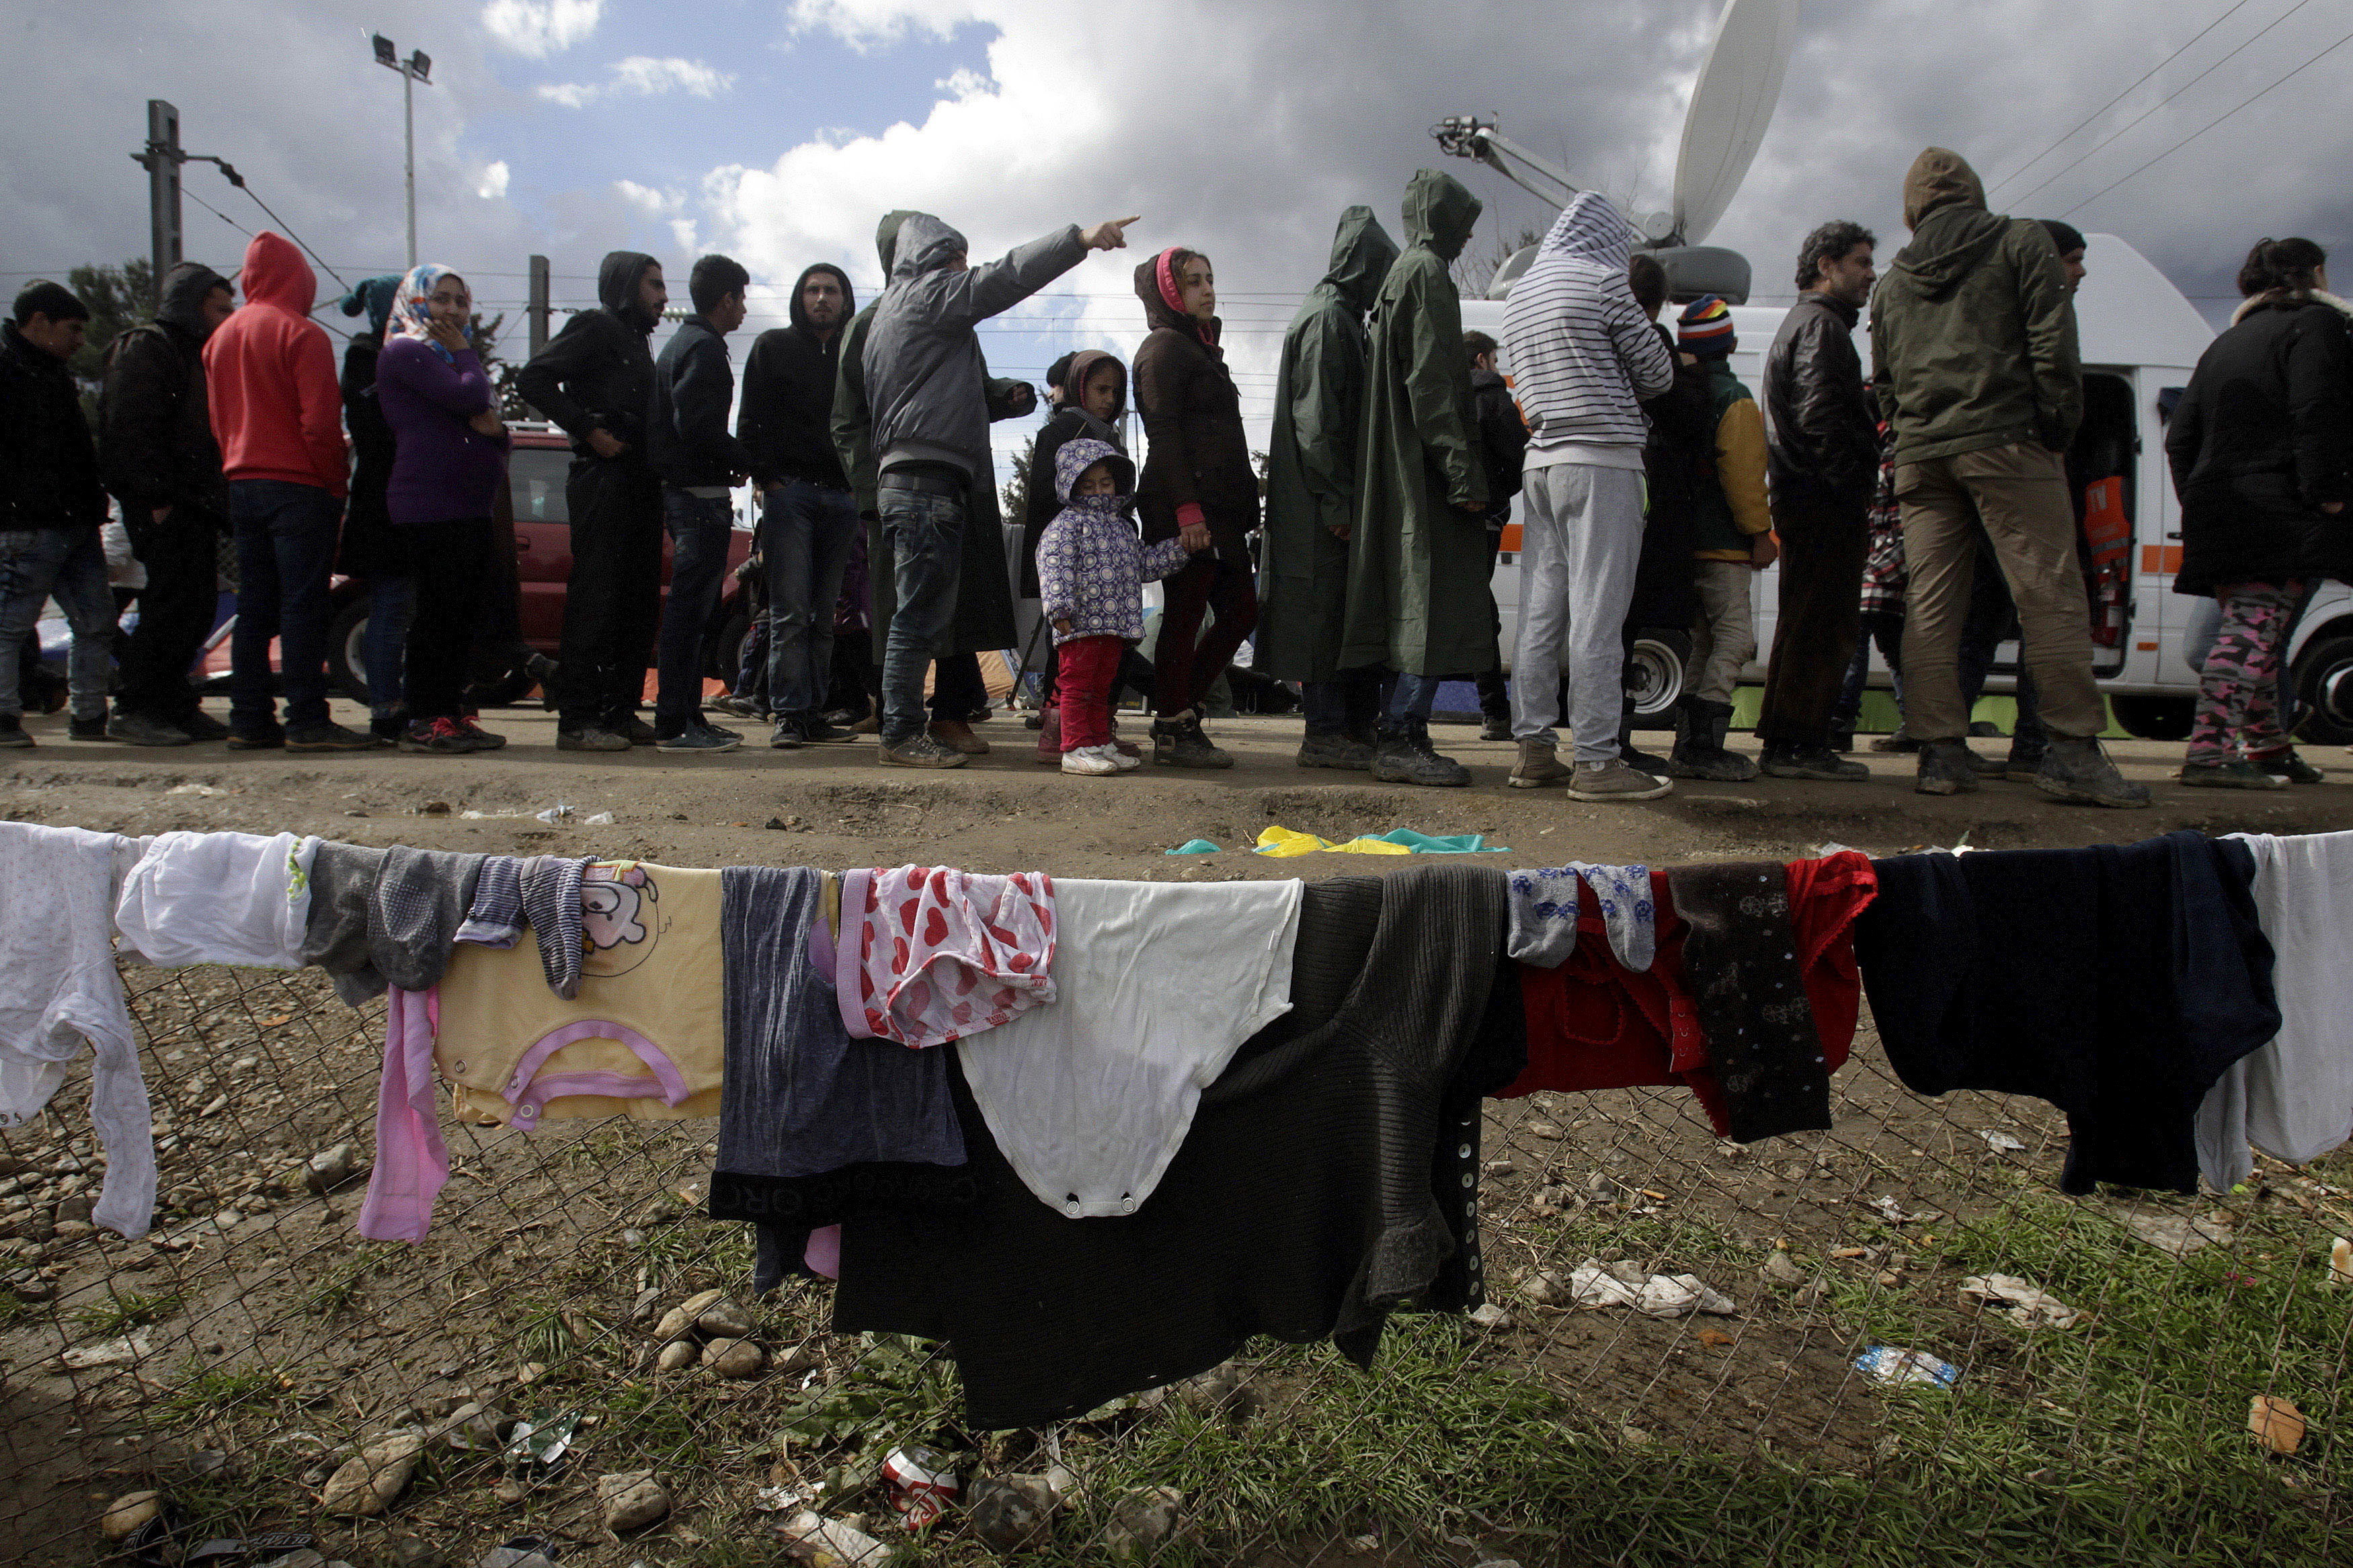 Refugees and migrants line up to receive aid in a makeshift camp at the Greek-Macedonian border, near the Greek village of Idomeni March 4, 2016.